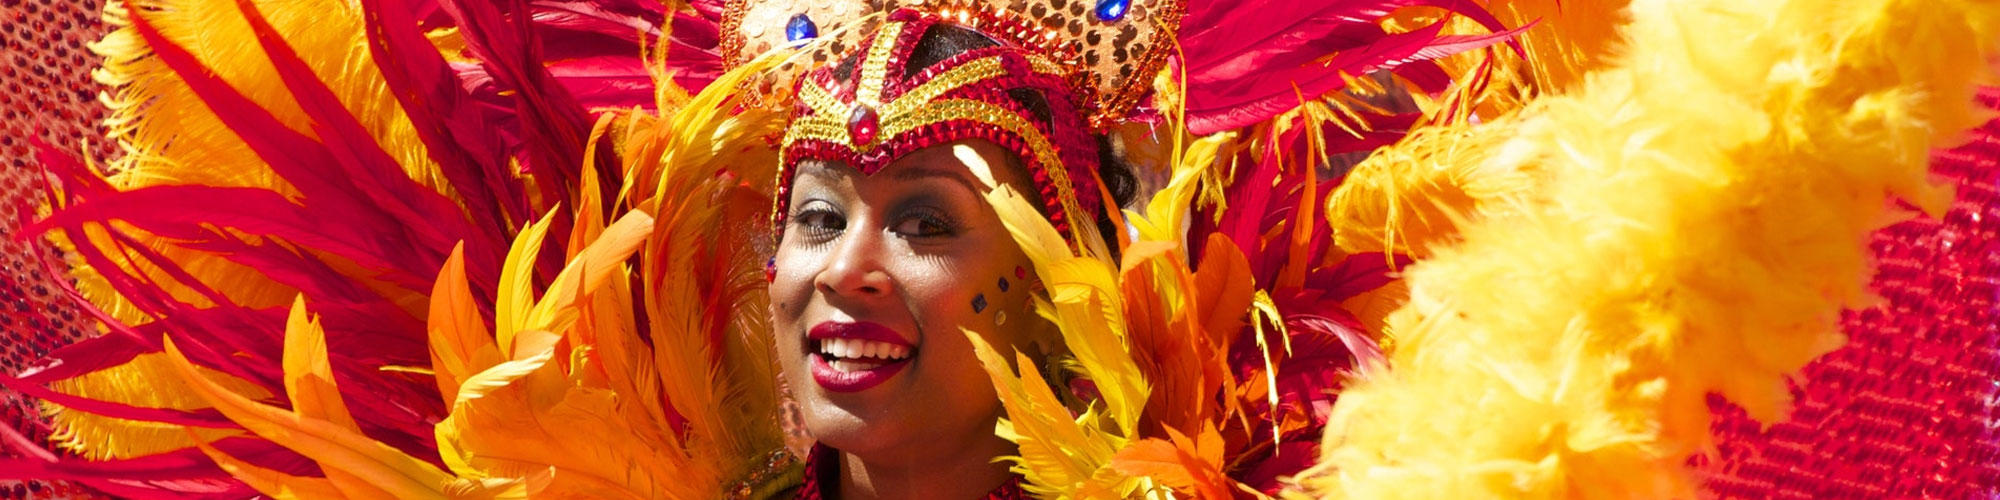 Brazilian woman in carnival costume.